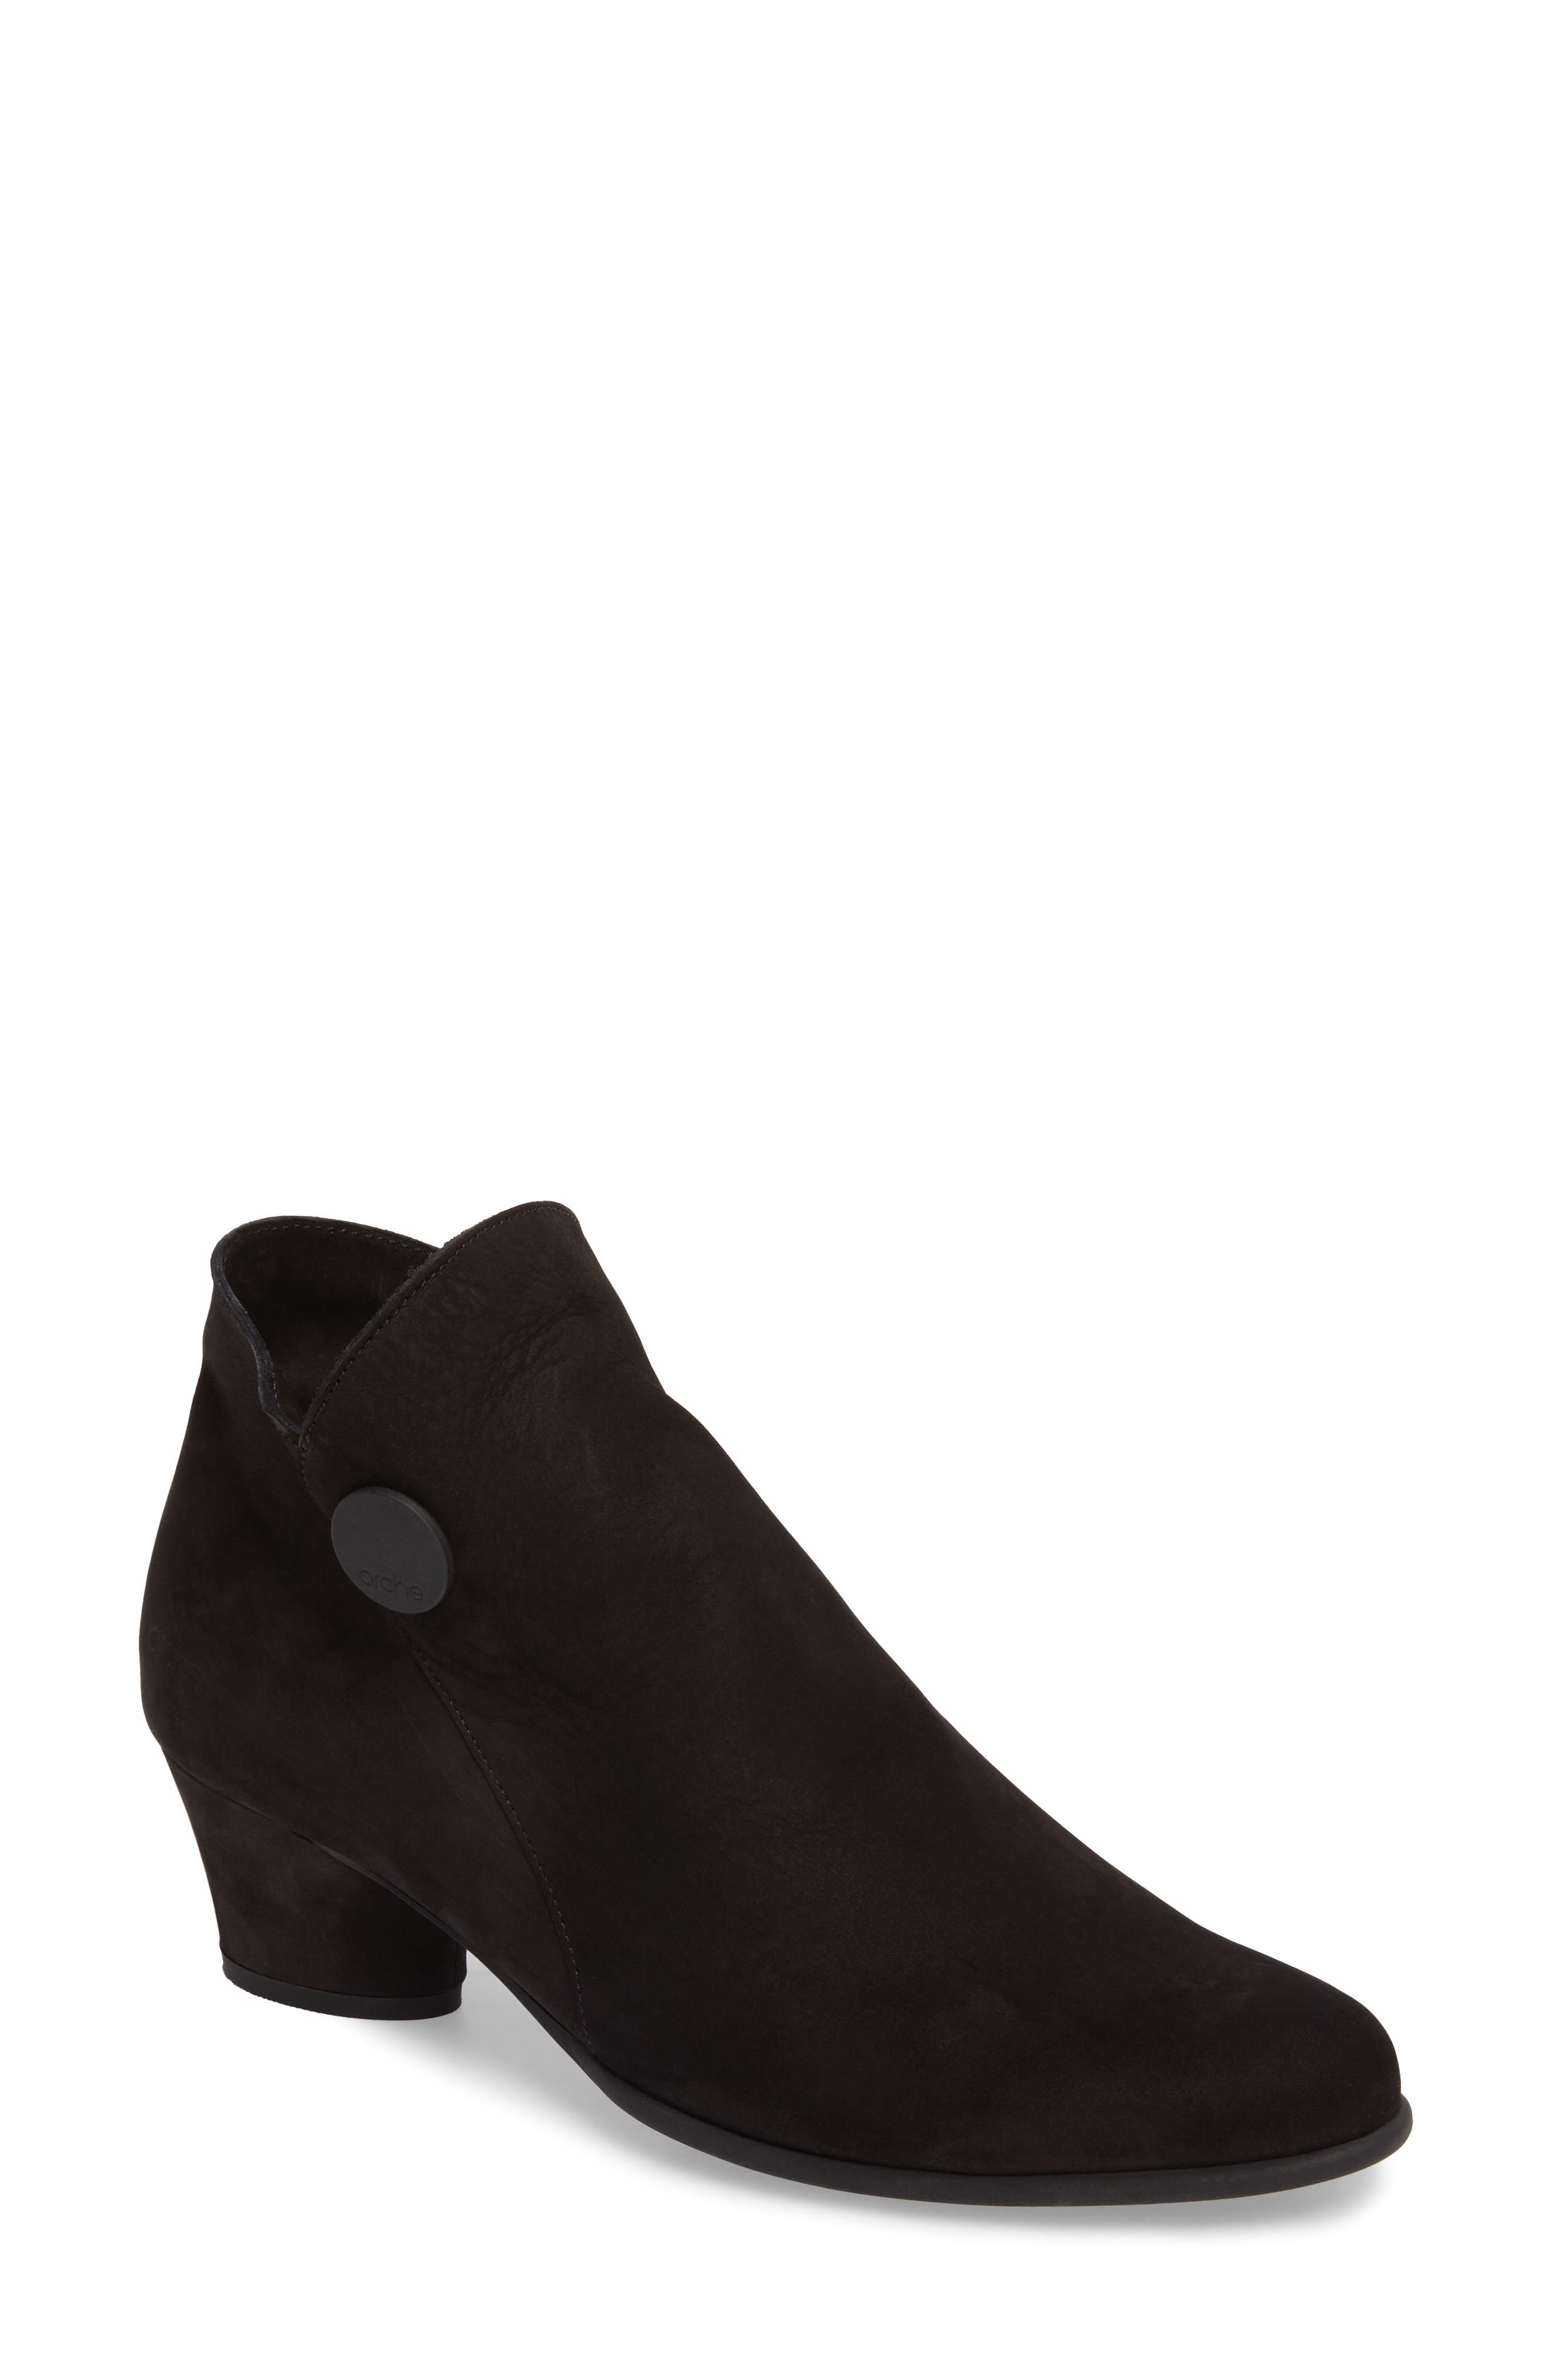 Alternate Image 1 Selected - Arche Mussem Water Resistant Bootie (Women)